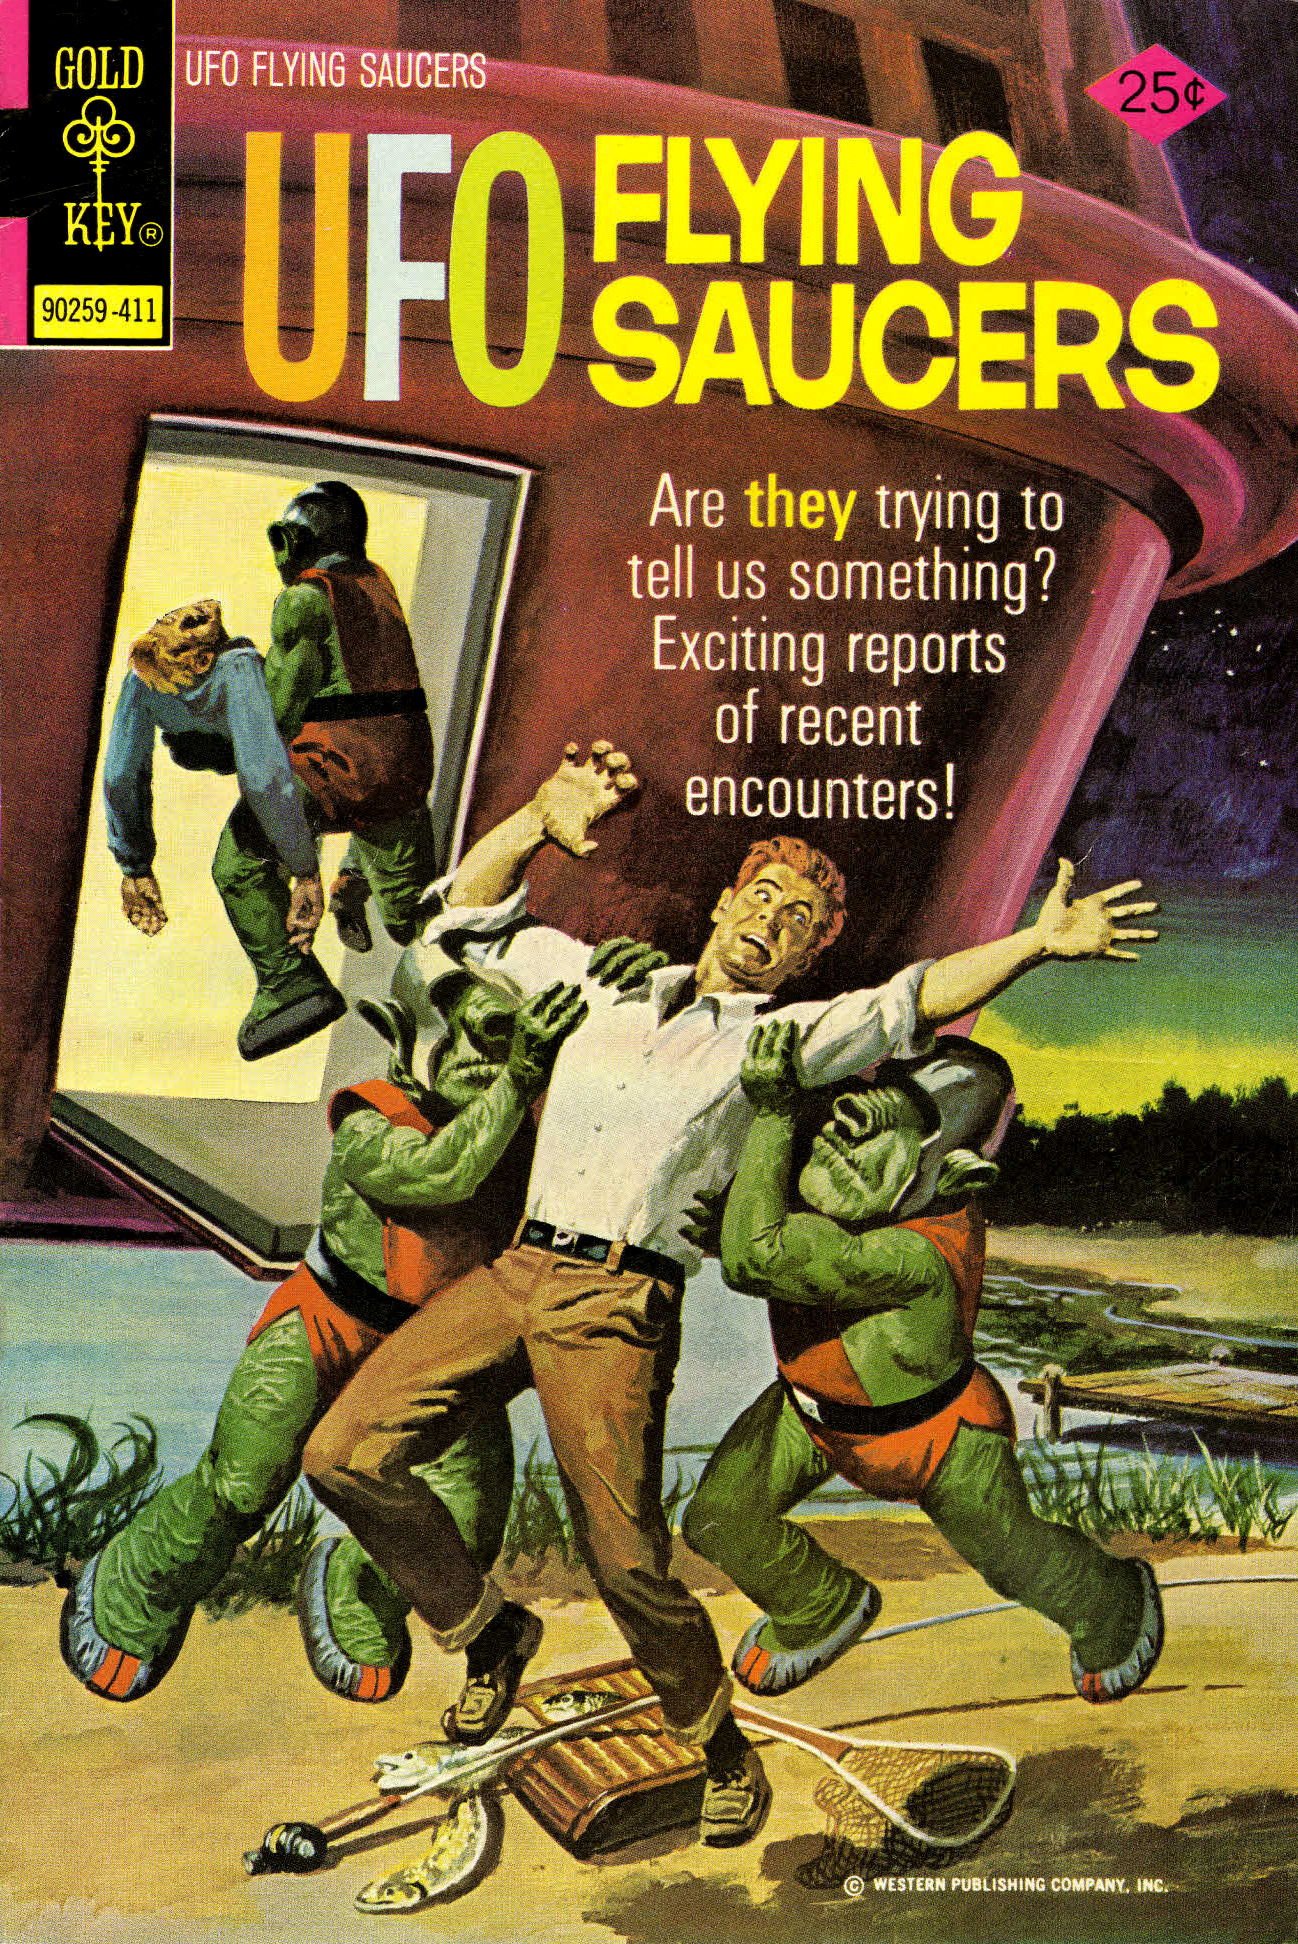 UFO Flying Saucers #4, George Wilson Cover Art (Gold Key, 1974)